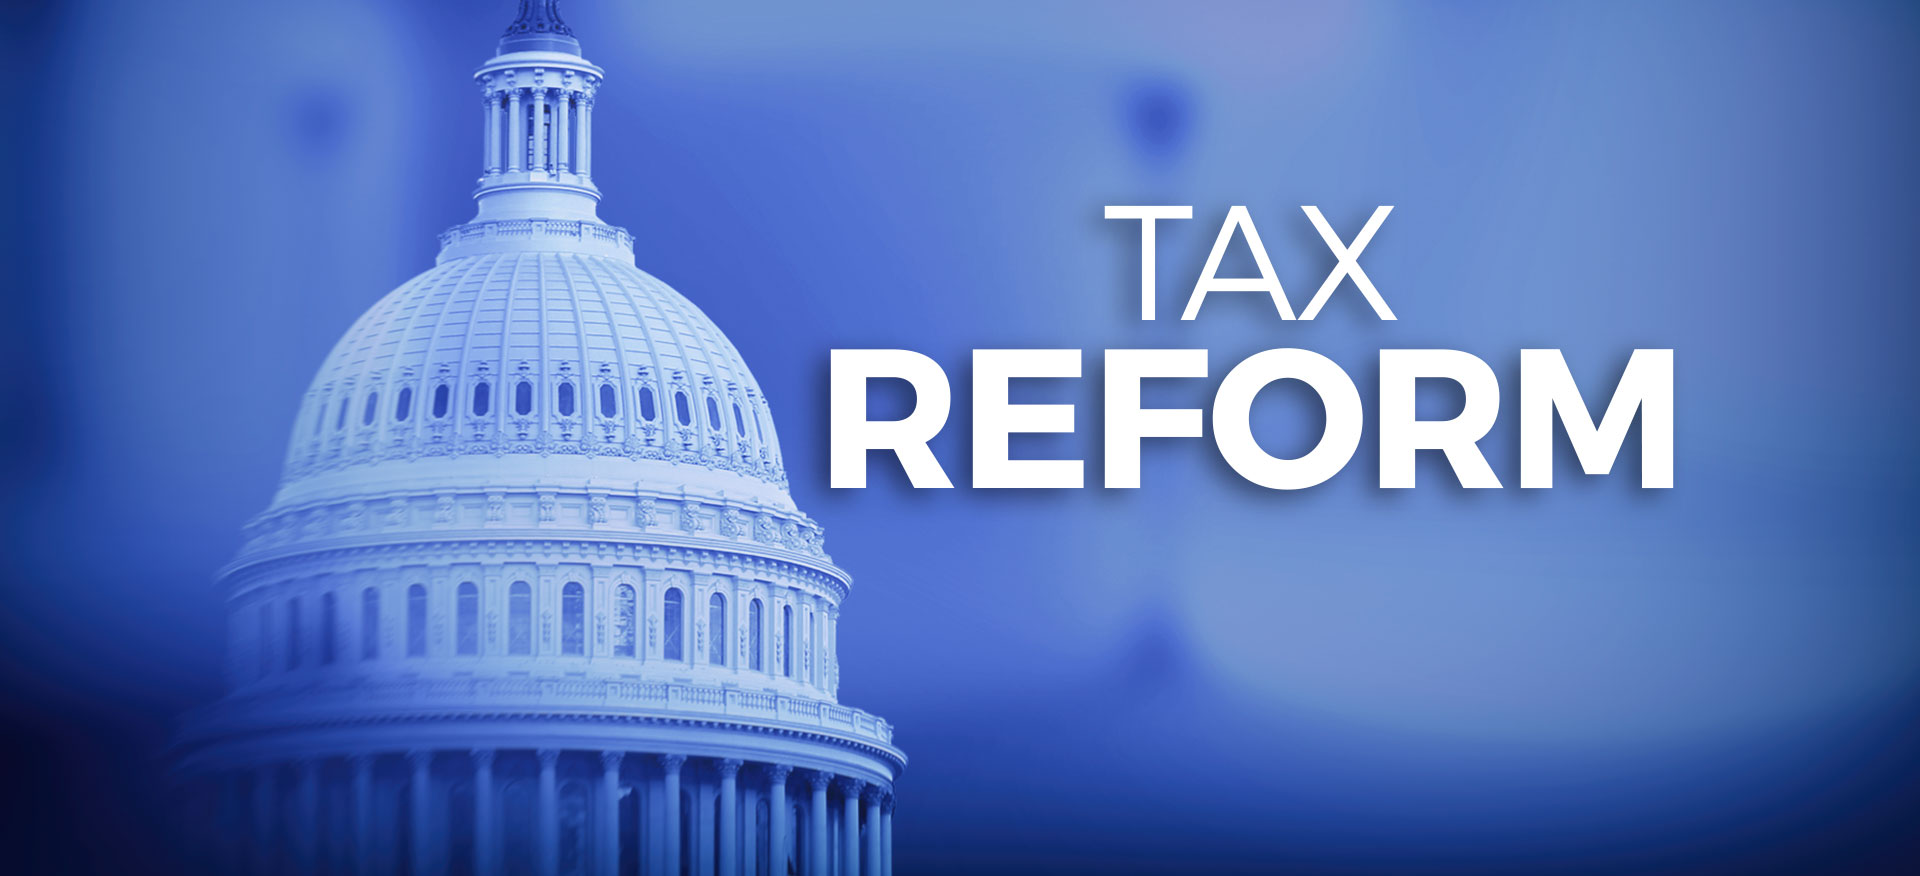 u-s-senate-tax-reform-us-senate-tax-reform